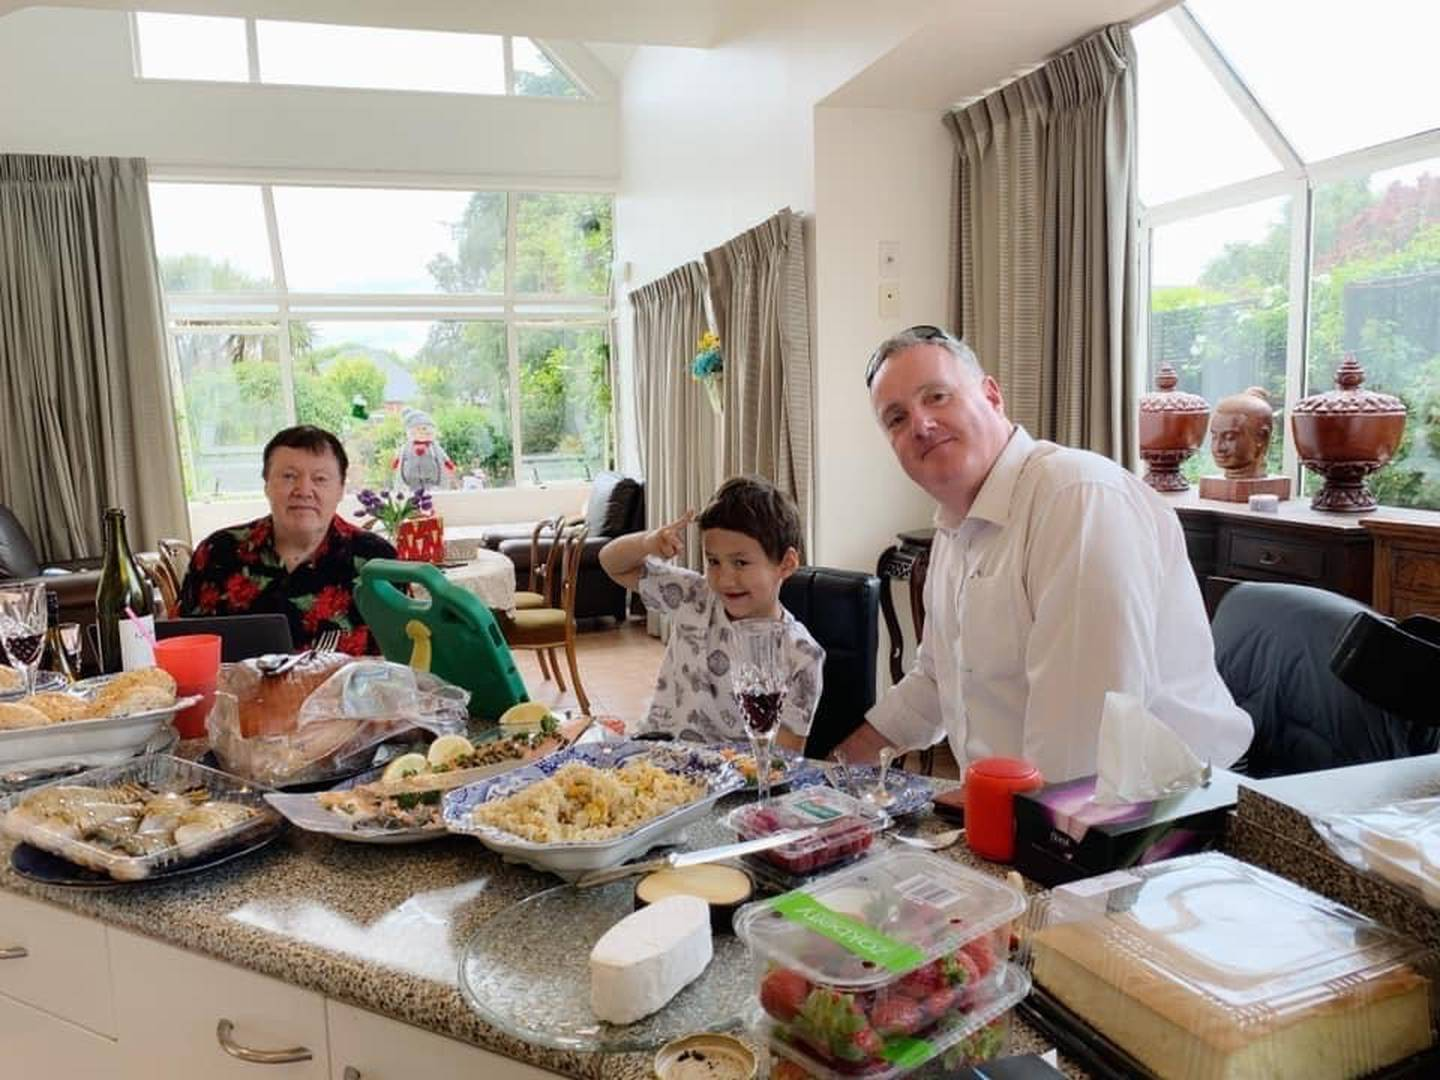 Jarrod O'Sullivan at Christmas lunch with family. Photo: Supplied